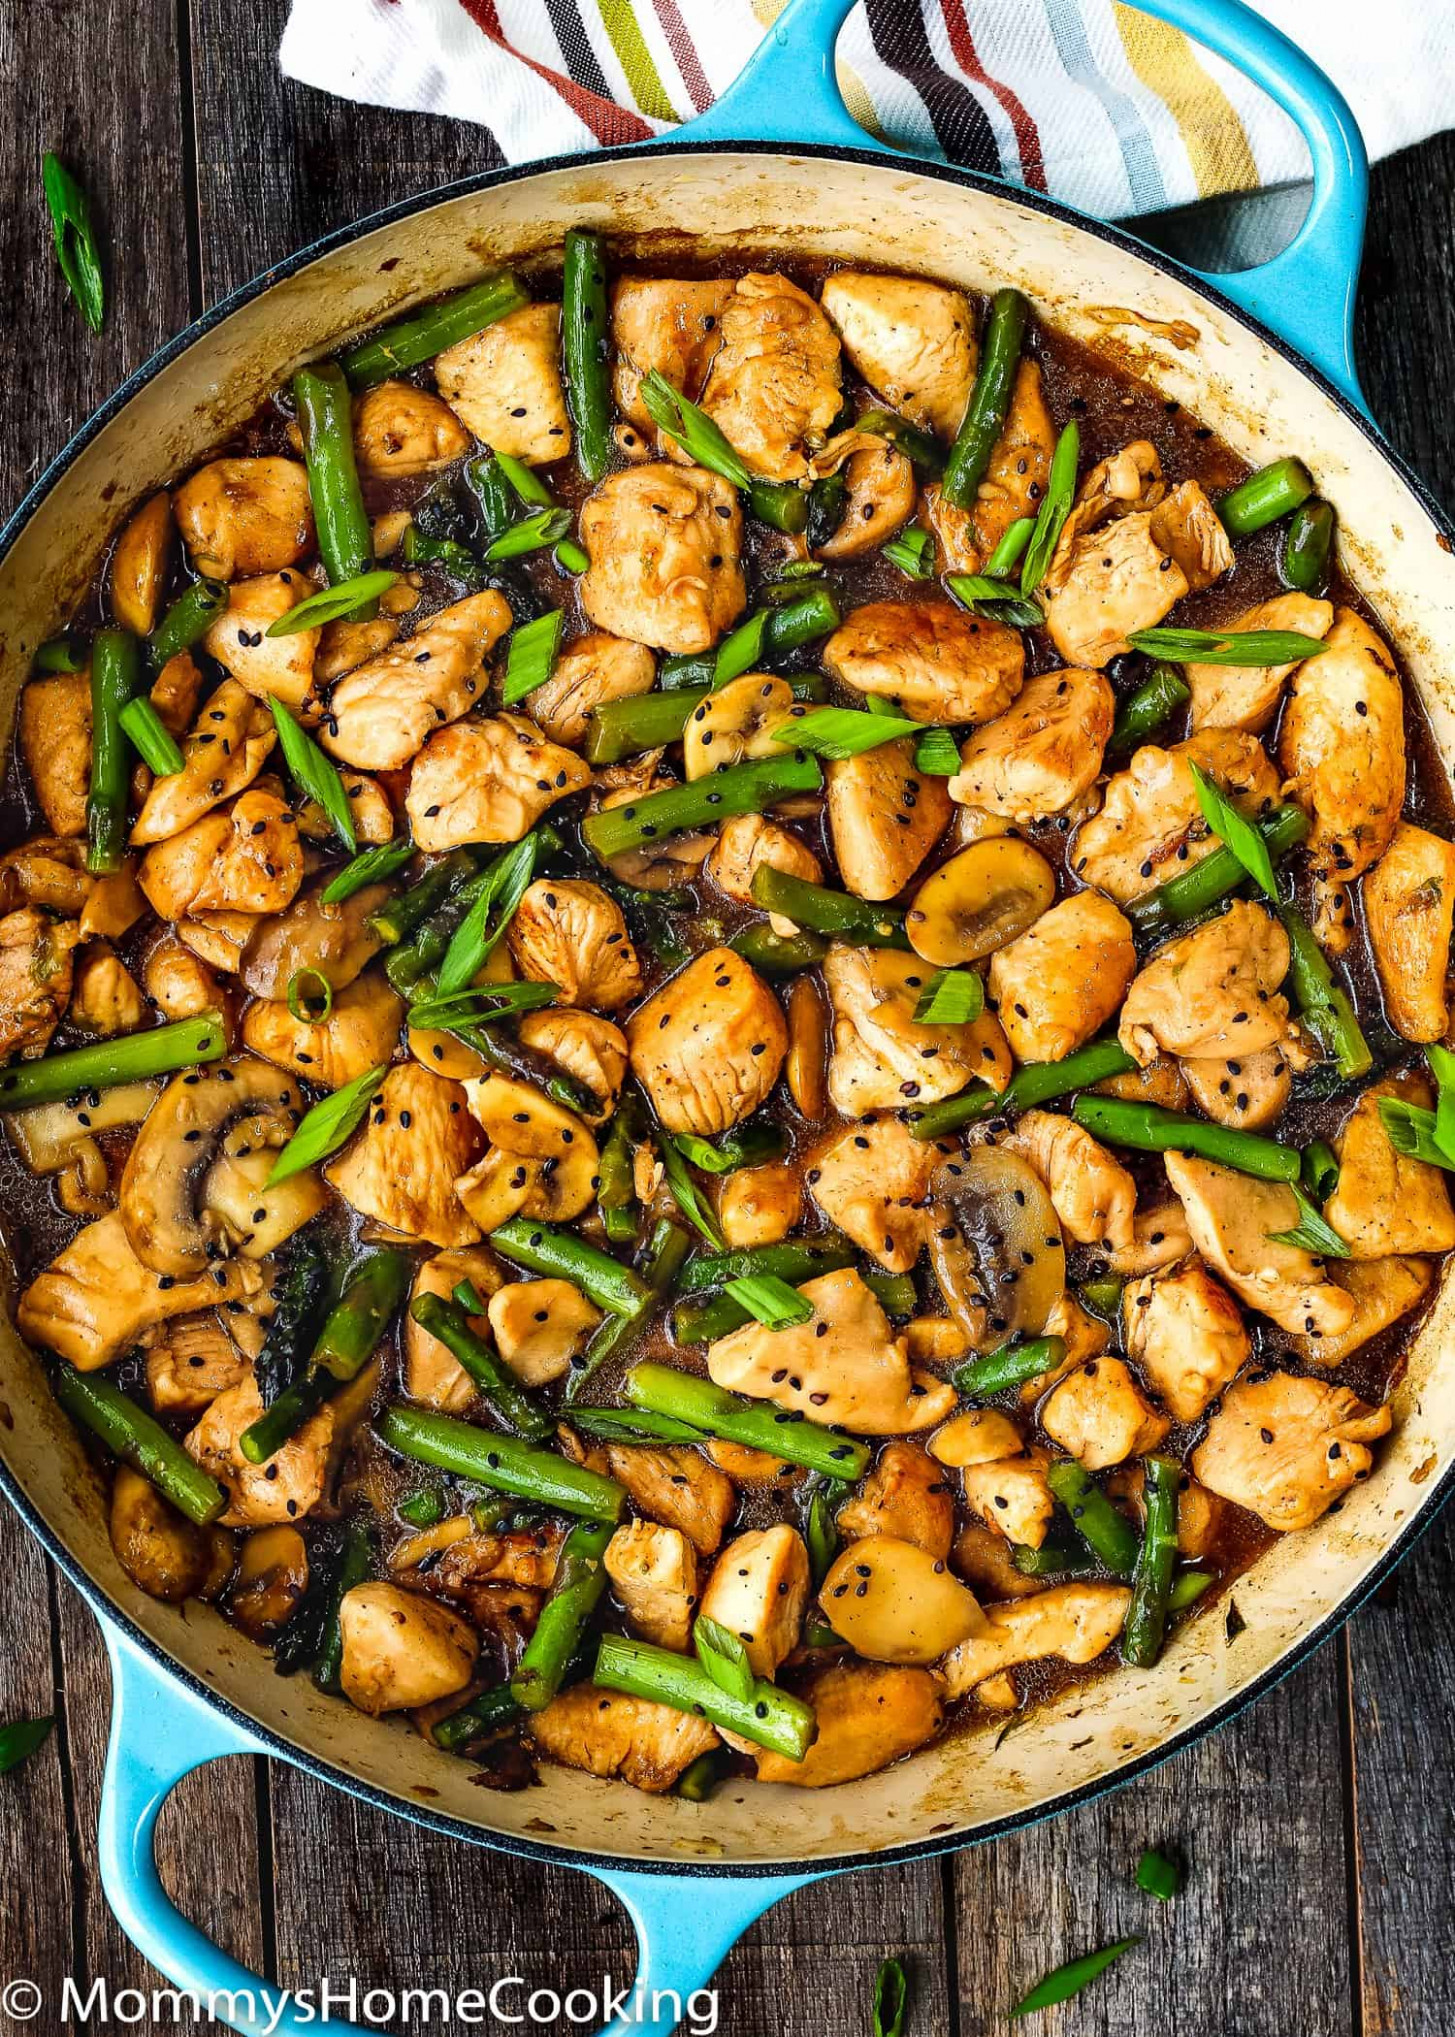 Easy Healthy Chicken and Asparagus Skillet - breast recipes chicken quick